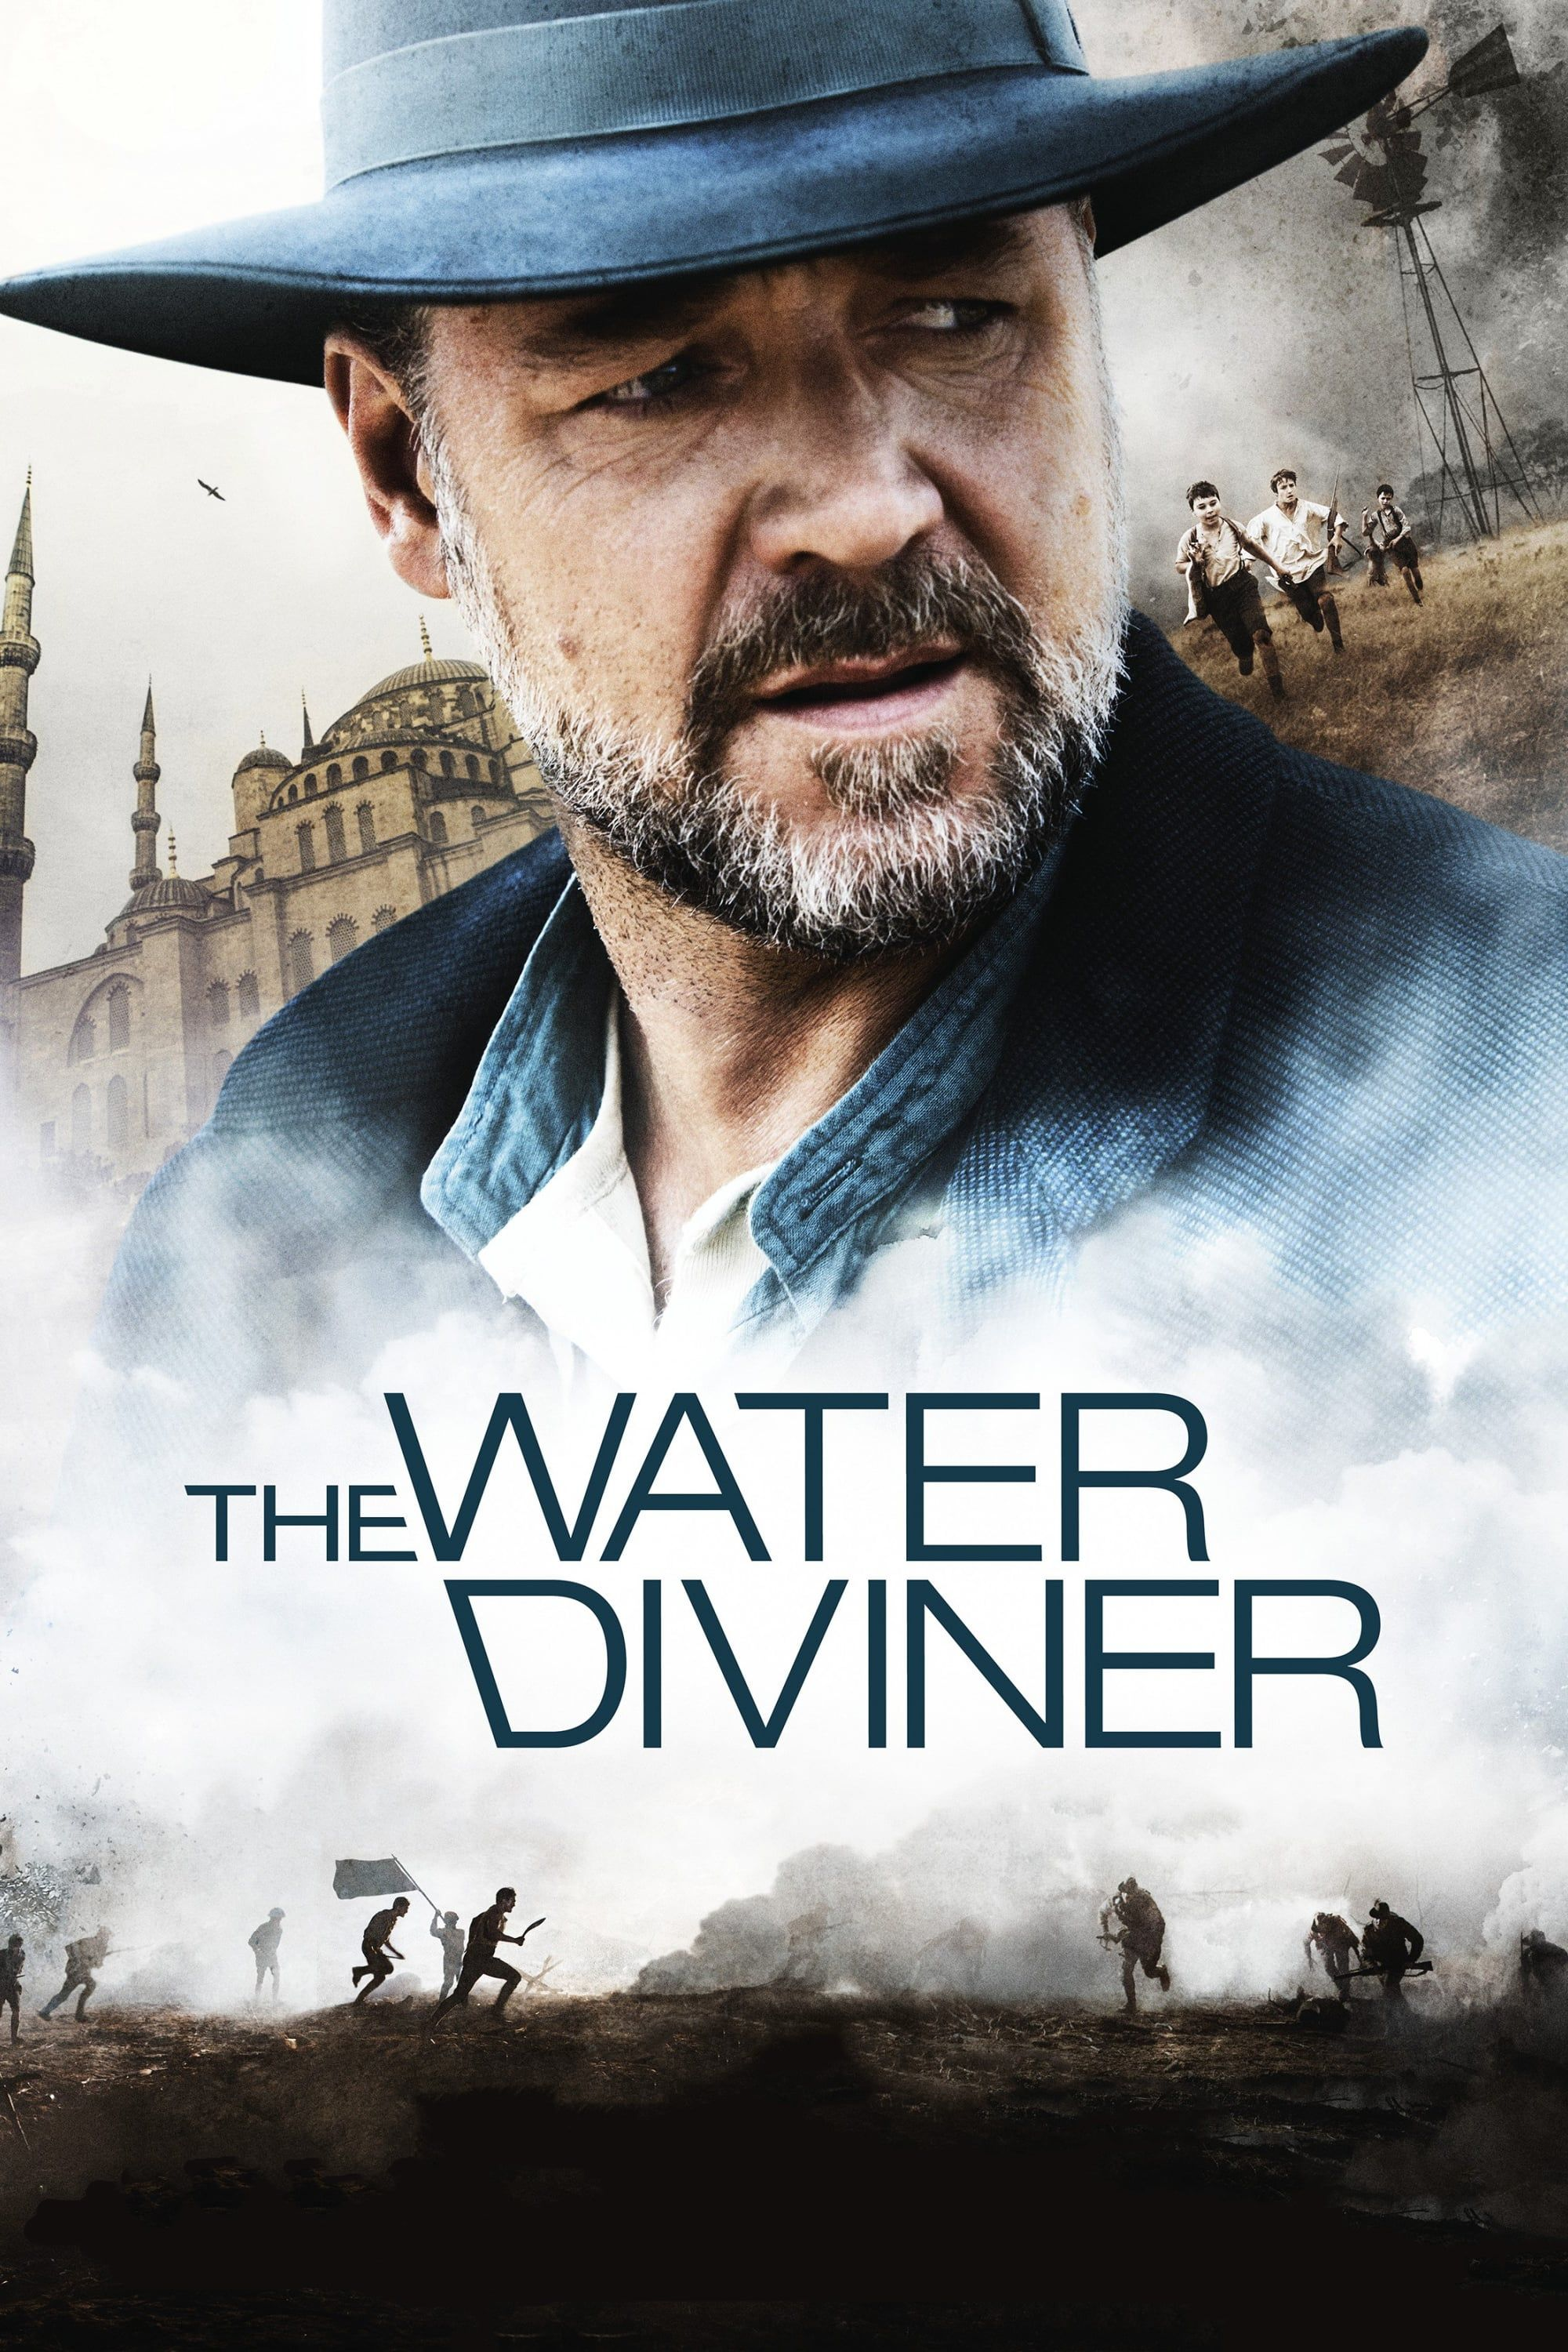 The Water Diviner 2014 Dual Audio Eng Hindi 480p Bluray 359mb